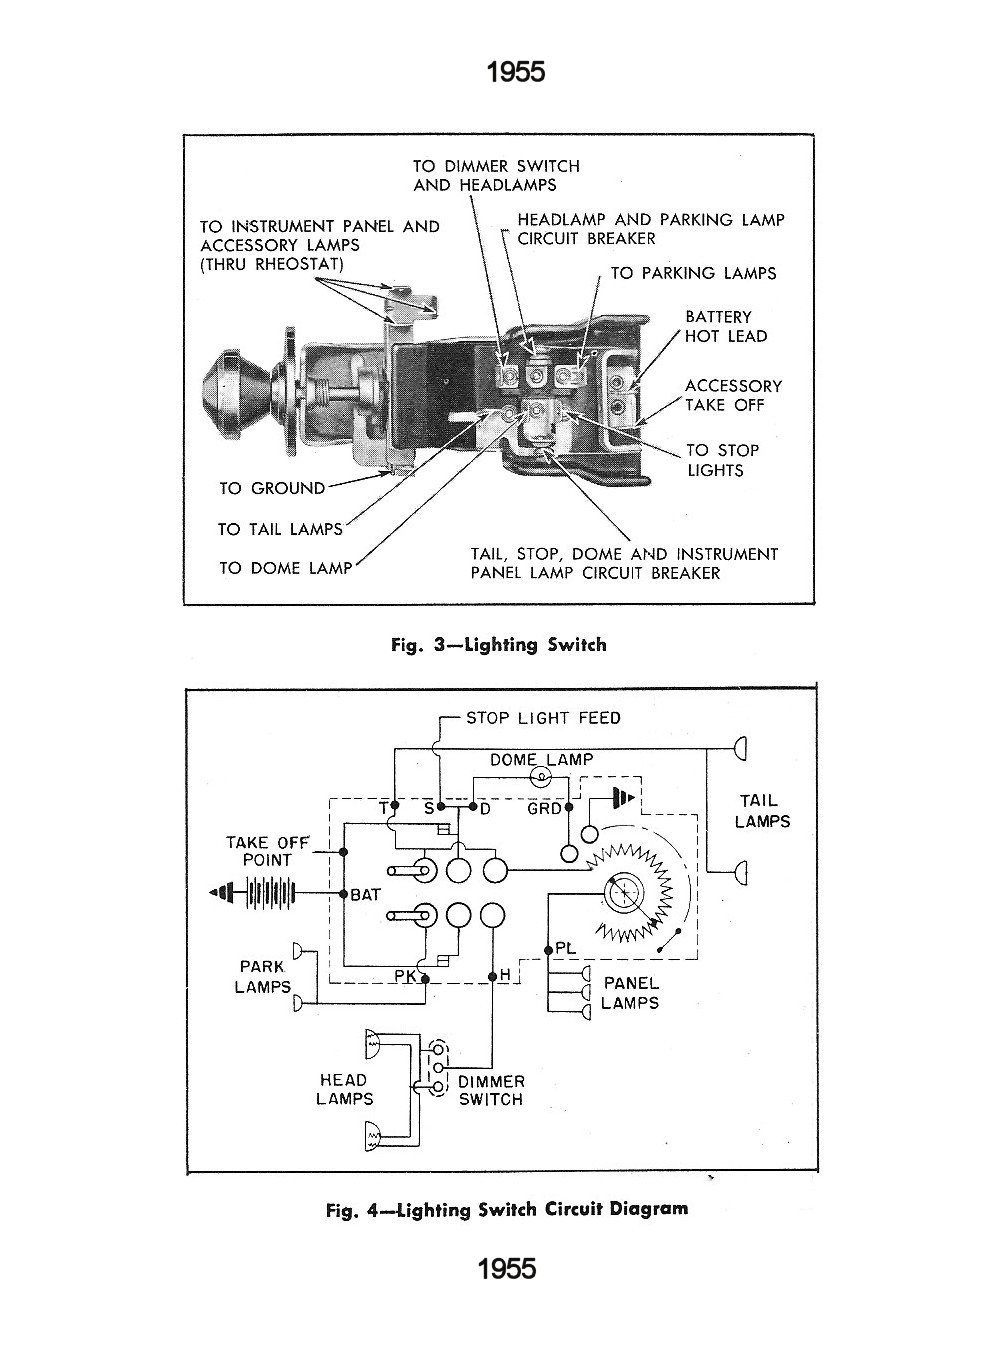 55csm1204a chevy wiring diagrams 1963 C10 Wiring Diagram at arjmand.co